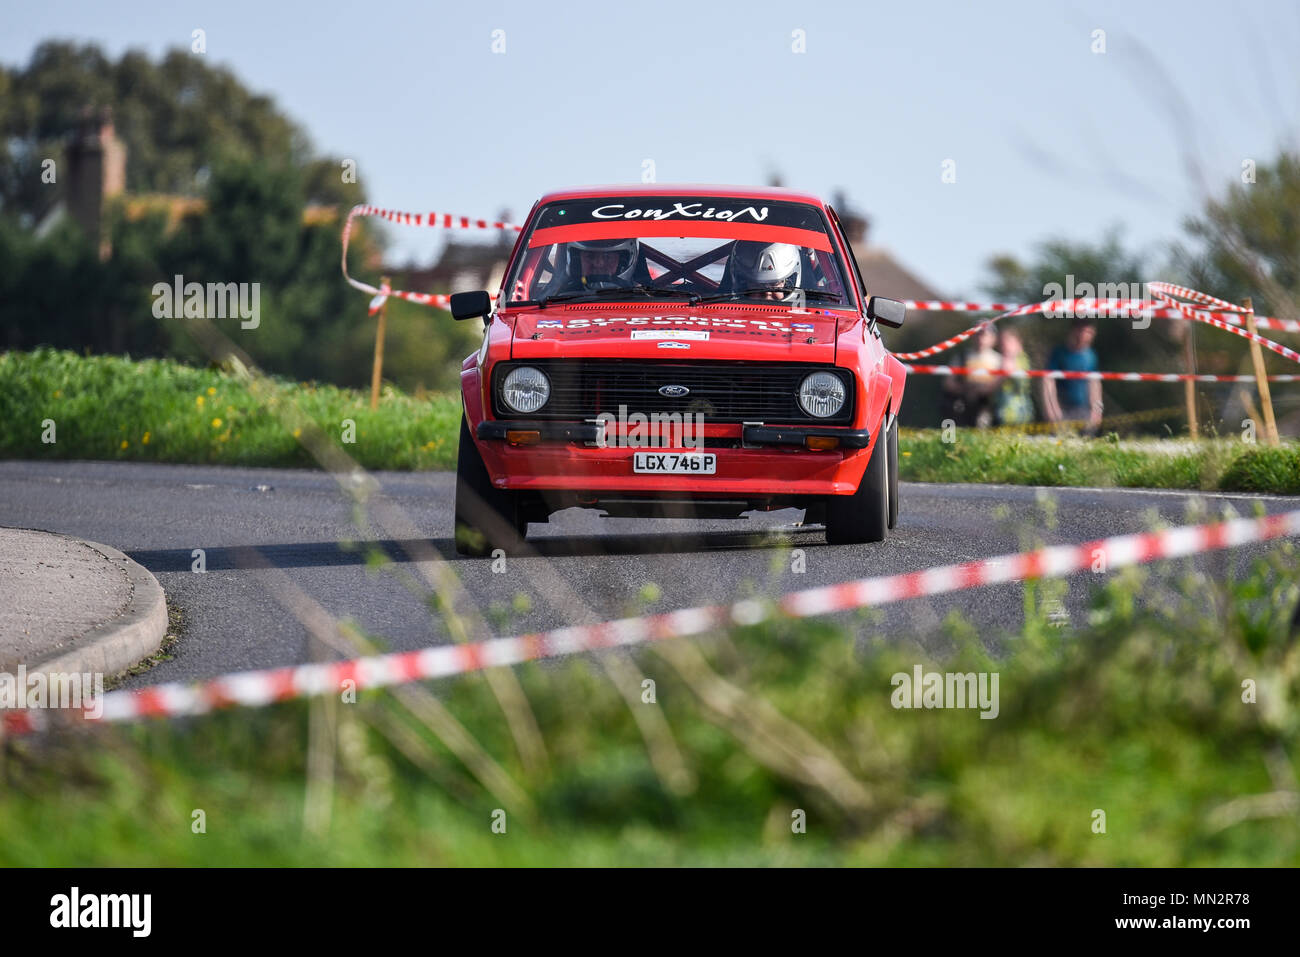 Tim Mewett driver Liz Jordan co driver racing Ford Escort II in the closed  public road Corbeau Seats car Rally Tendring and Clacton, Essex, UK